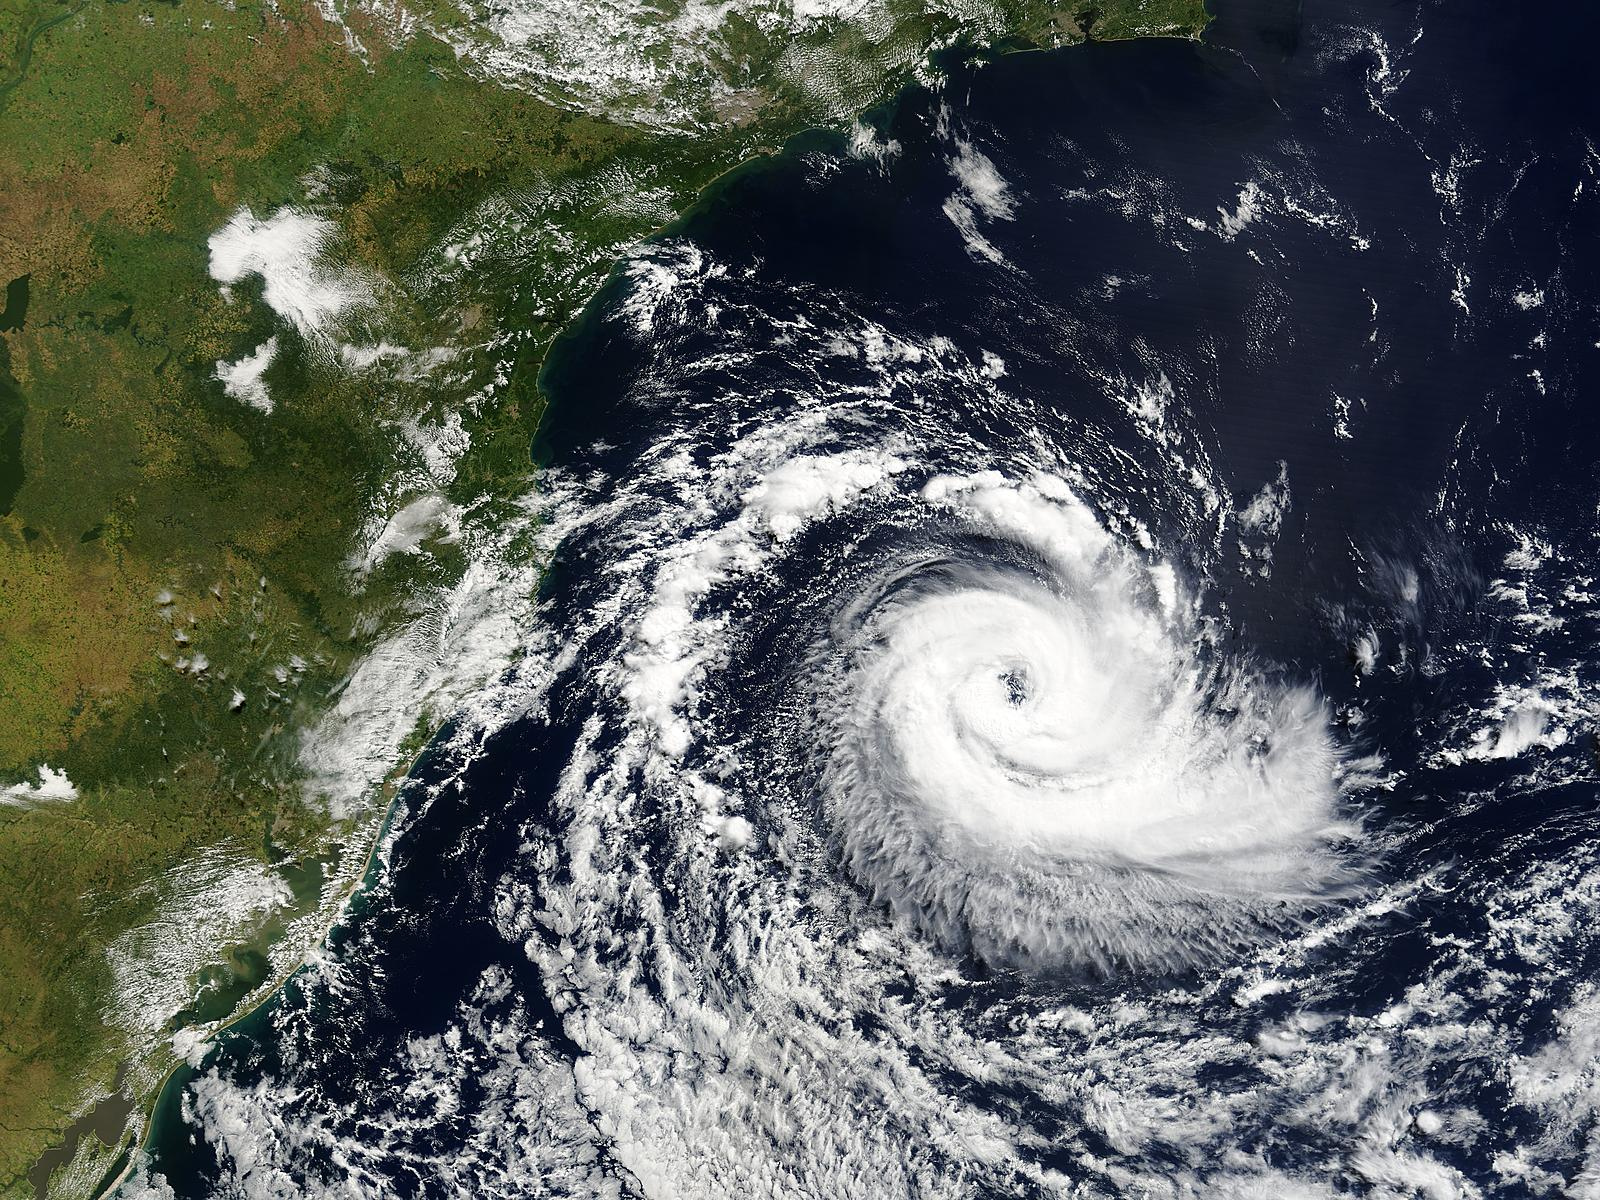 Image of Terra/MODIS 2004/086 13:10 UTC Tropical cyclone off Southern Brazil, Pixel size 1km